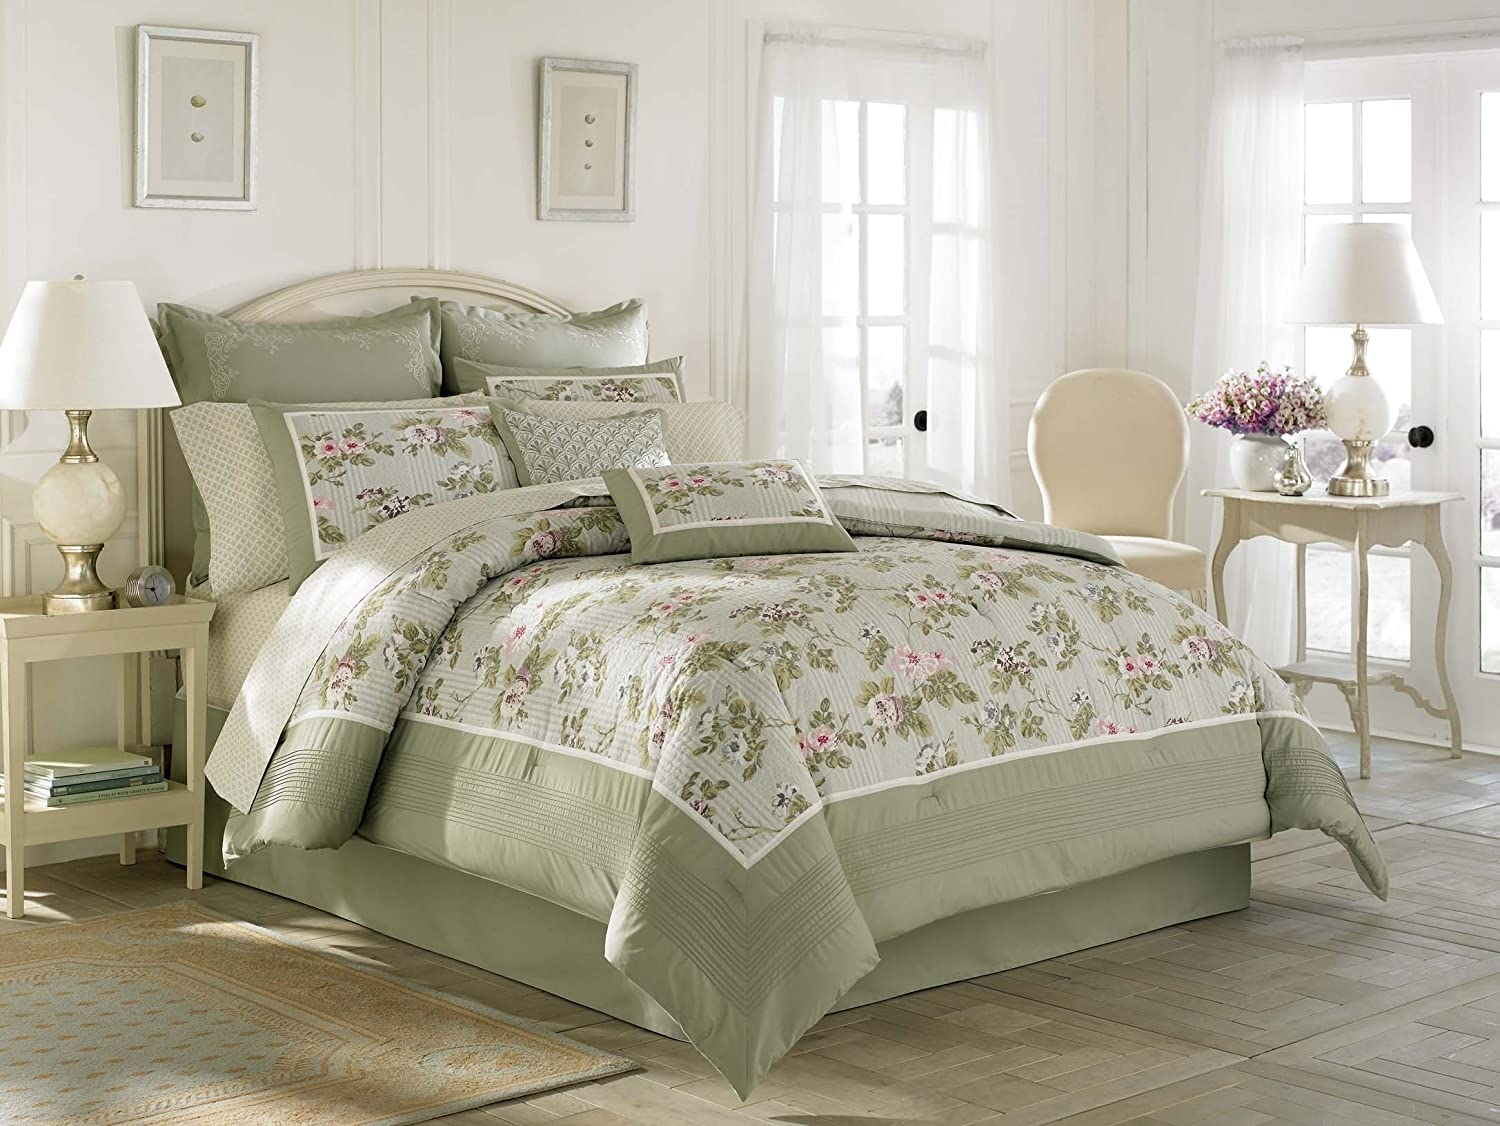 Laura Ashley Bedding Sets Ease Bedding With Style